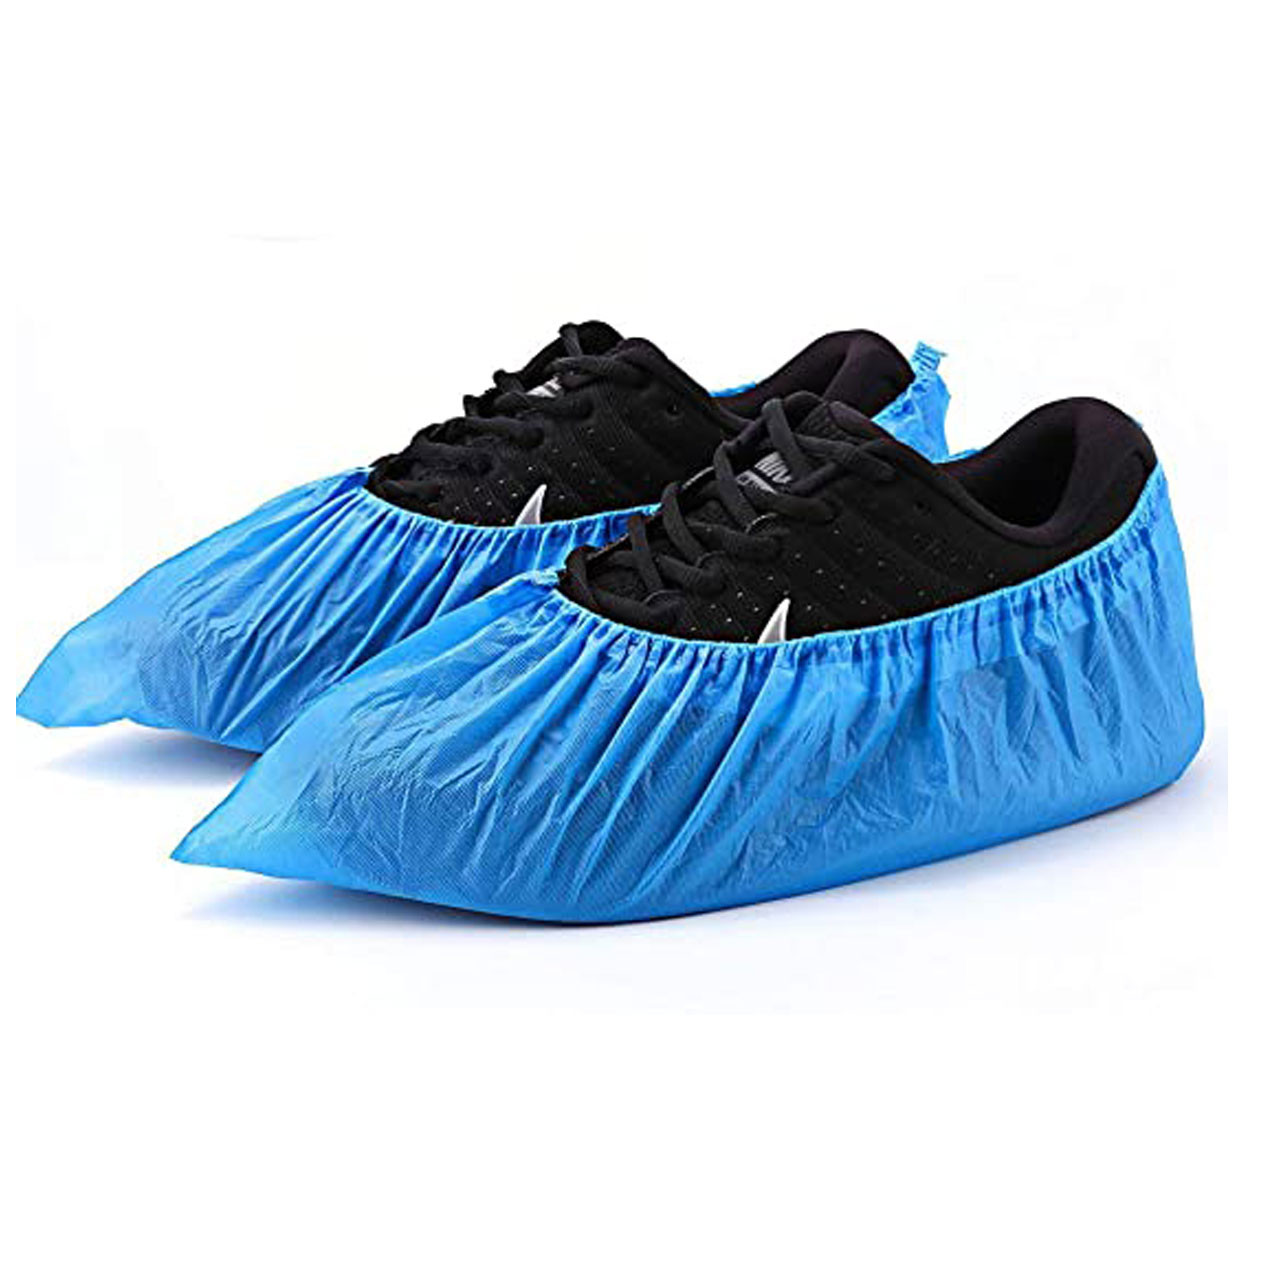 Disposable Shoe Covers - 150 Pairs